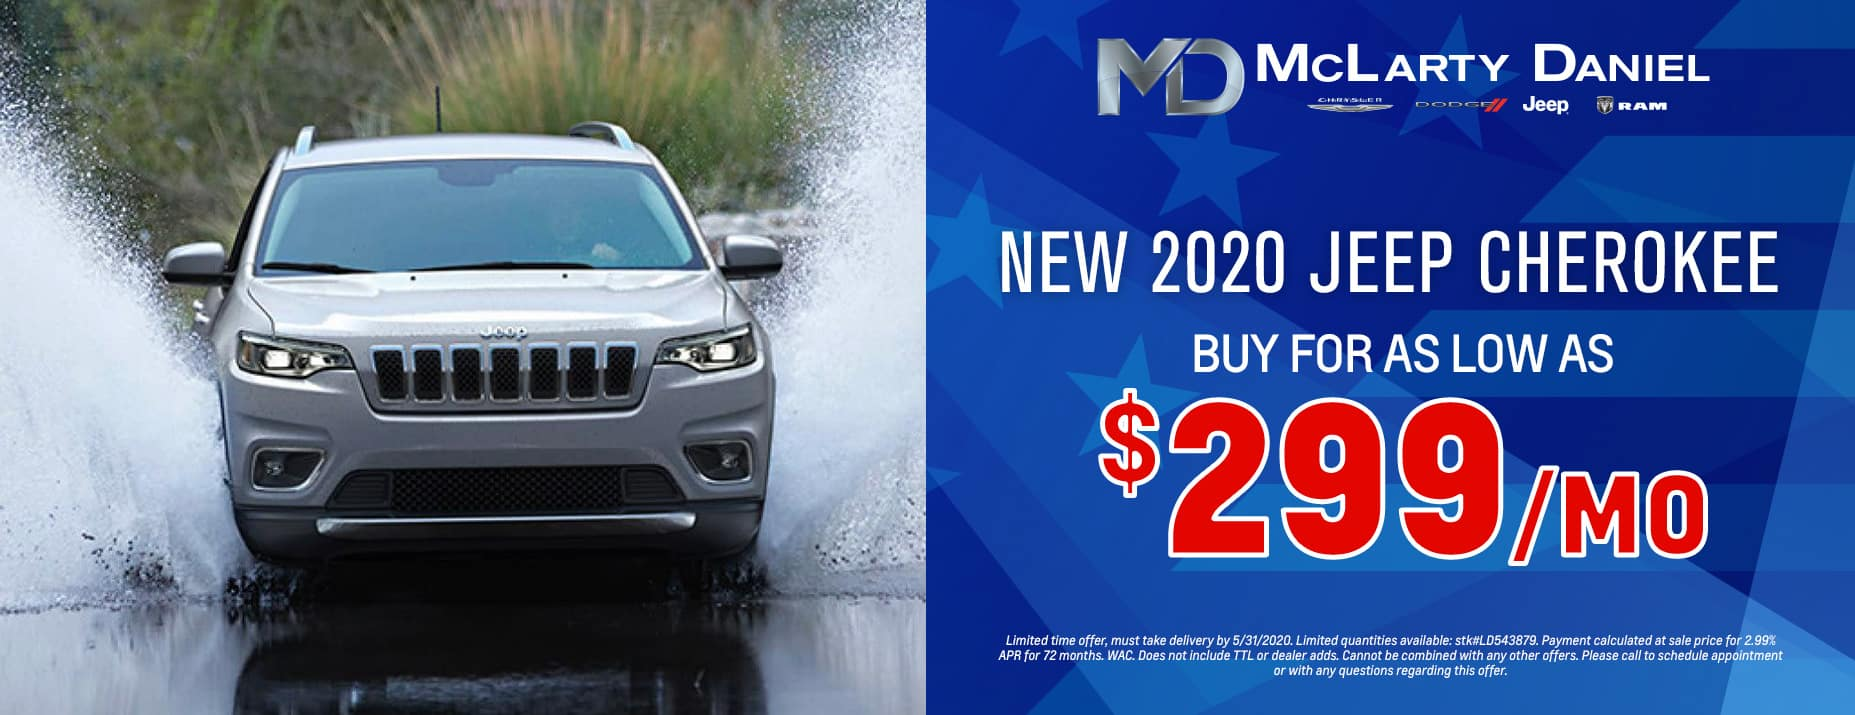 Buy a 2020 Cherokee for as low as $299 per month!